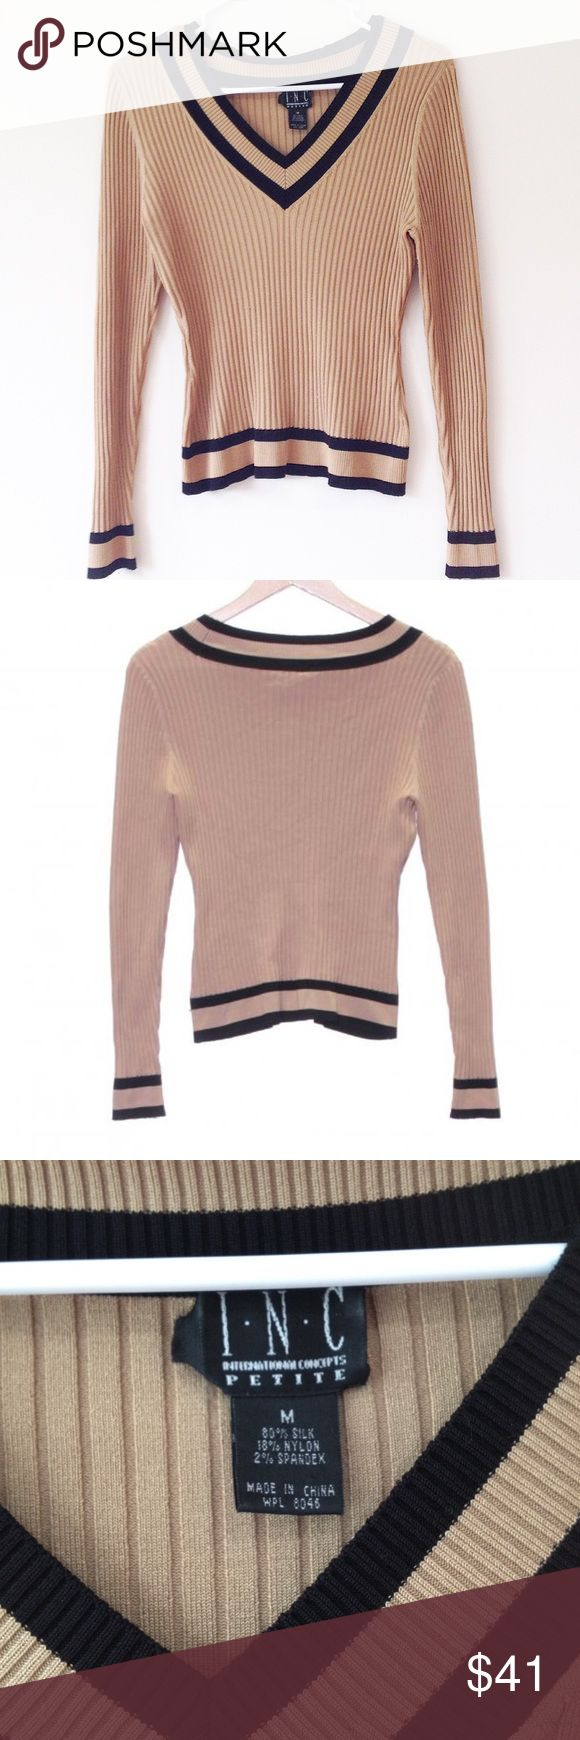 INC International Concepts Varsity Sweater Size M petite from INC International Concepts. In great condition. Soft and stretchy.  Fast shipping from a smoke free home. INC International Concepts Sweaters